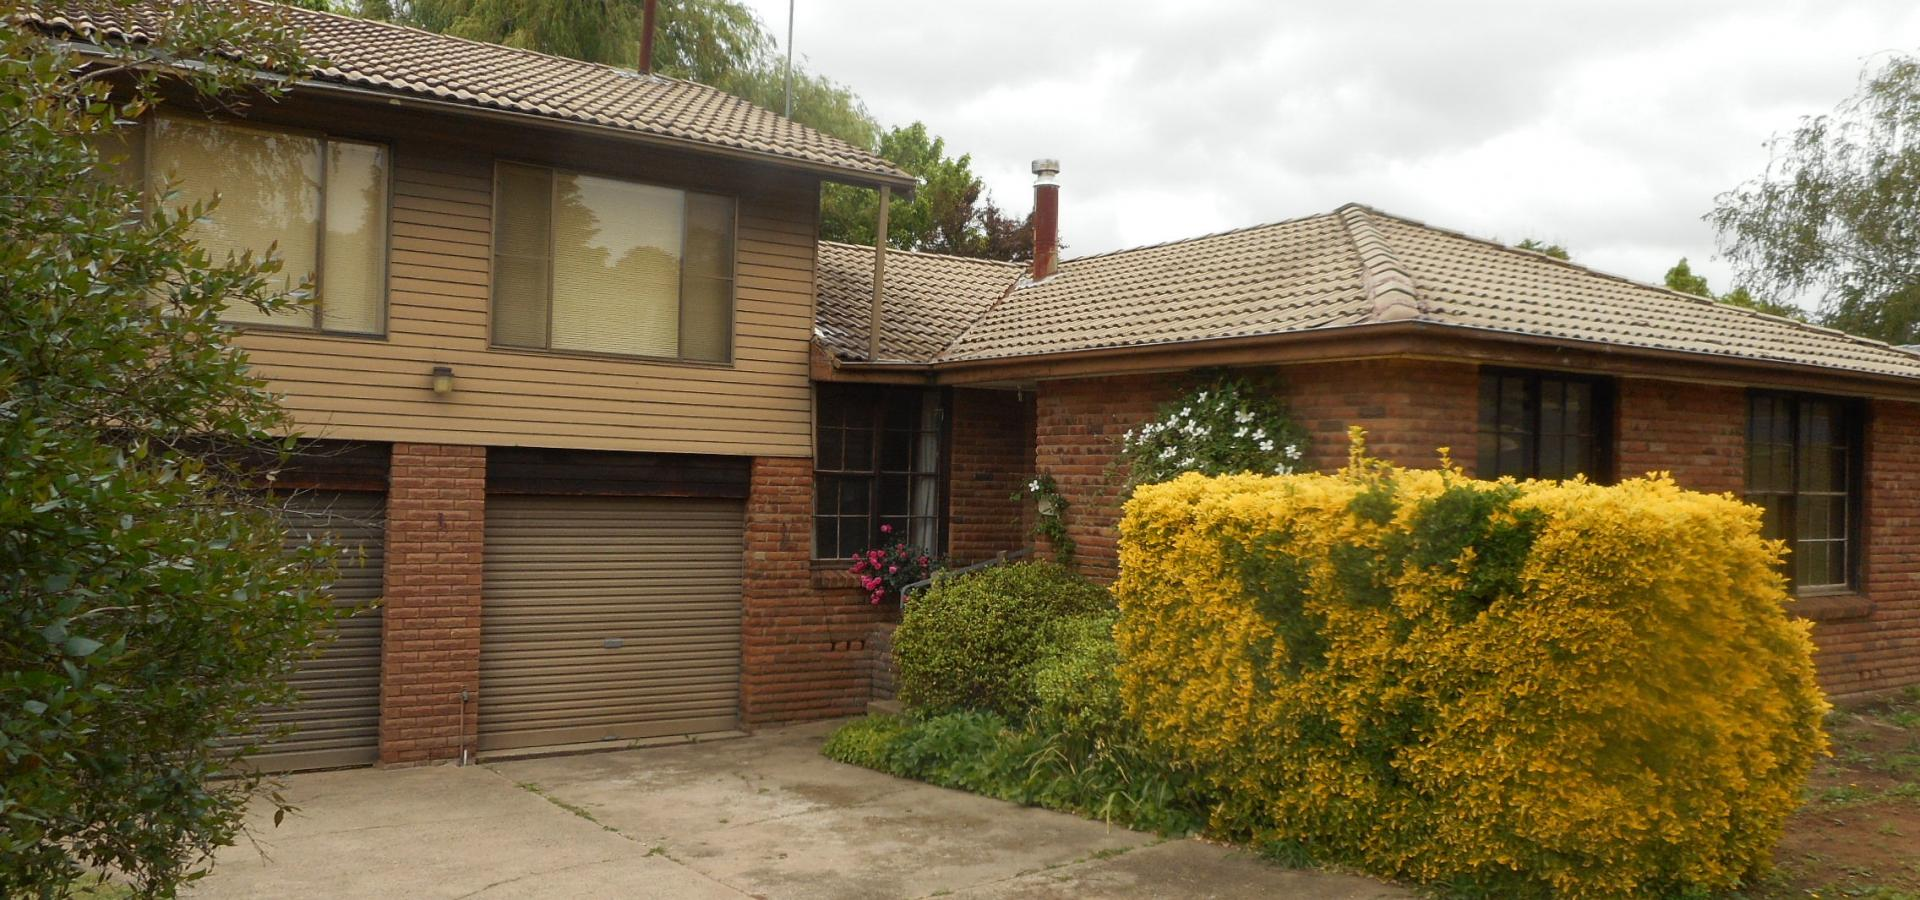 VALUED OPPORTUNITY FOR THE RENOVATOR!